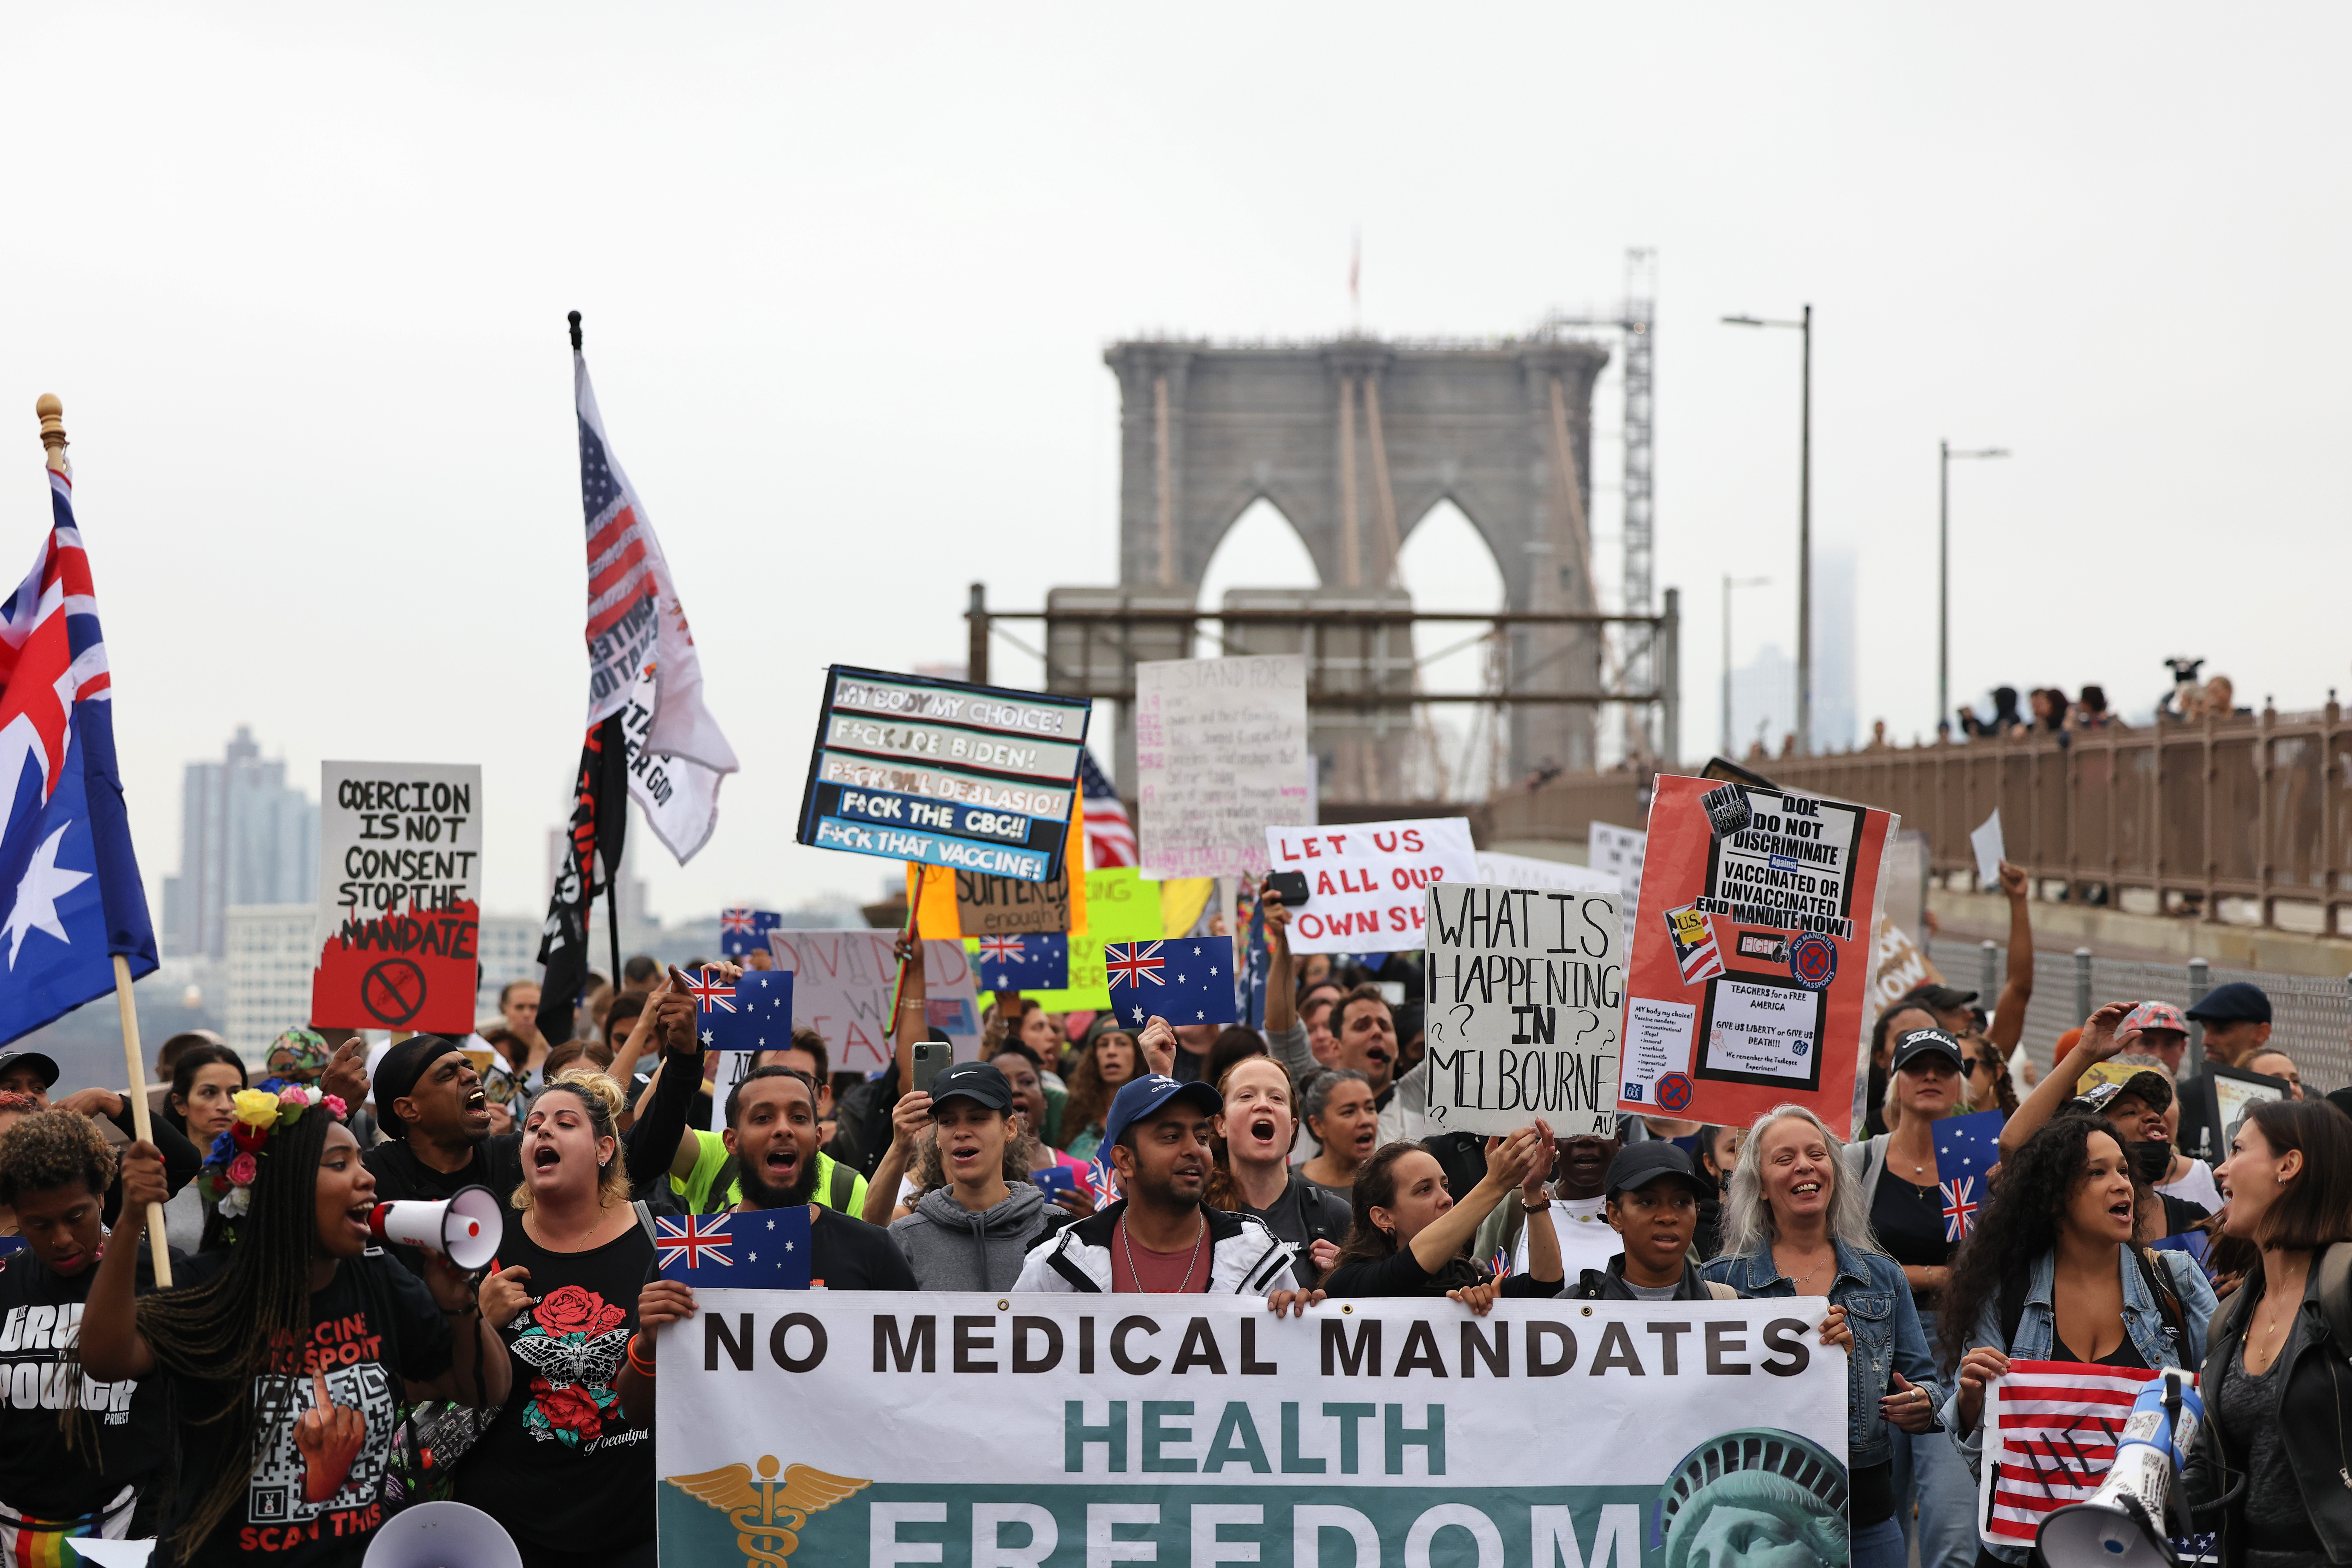 People march as they protest against NYC's COVID-19 vaccine mandate that went into effect today for public school employees on October 04, 2021 in New York City. (Photo by Michael M. Santiago/Getty Images